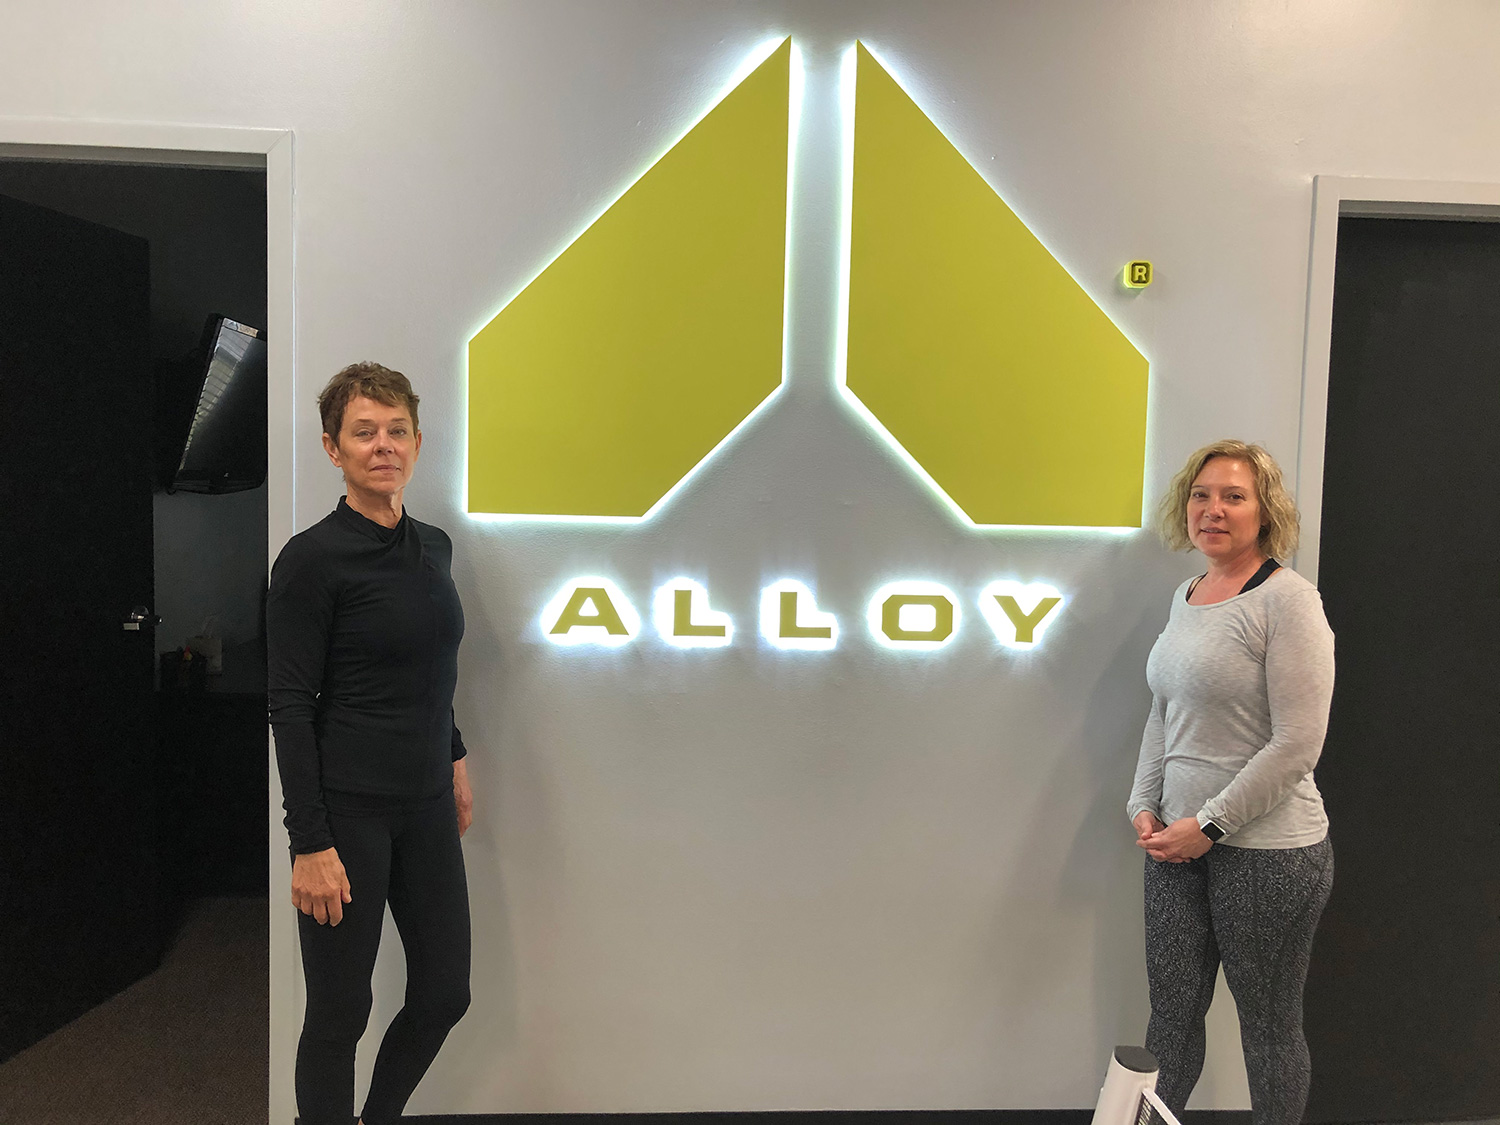 alloy summerfield owners